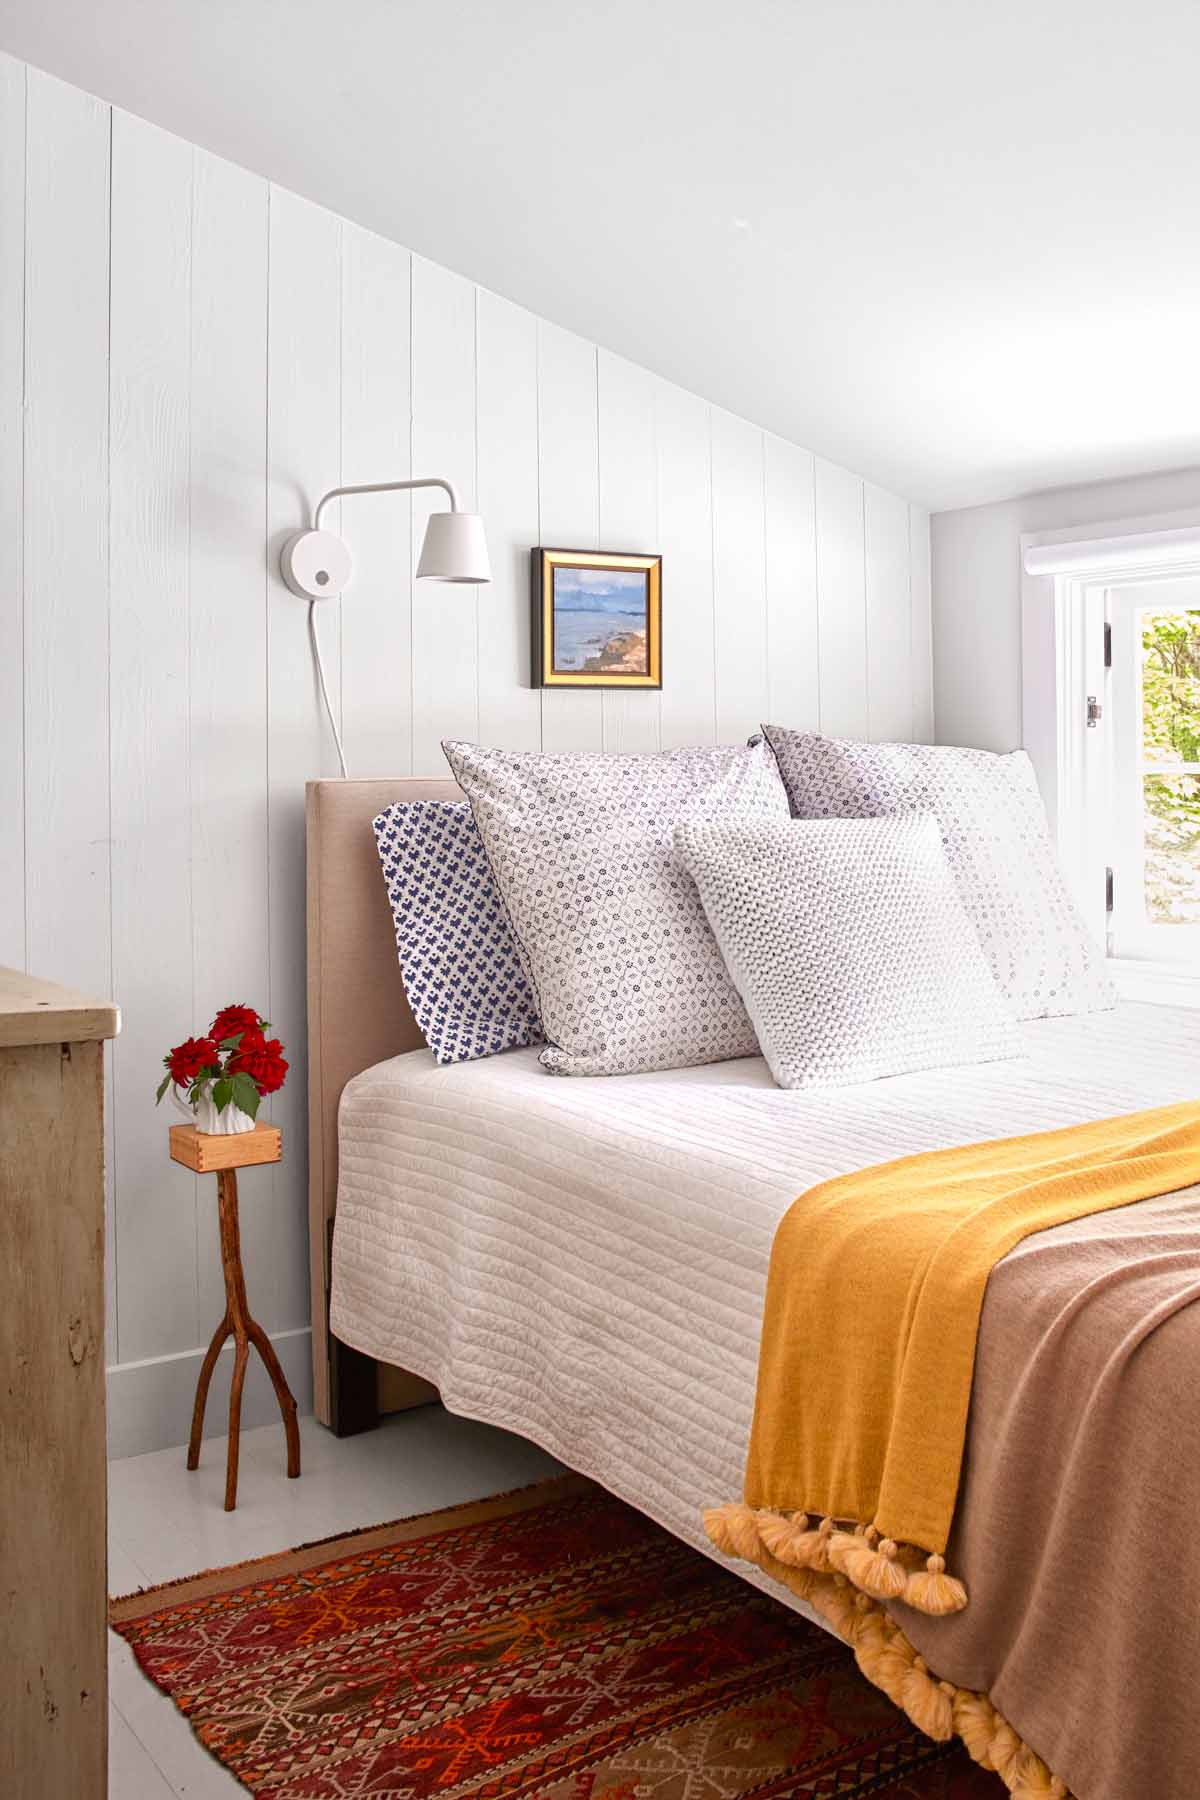 30 Guest Bedroom Pictures  Decor Ideas for Guest Rooms